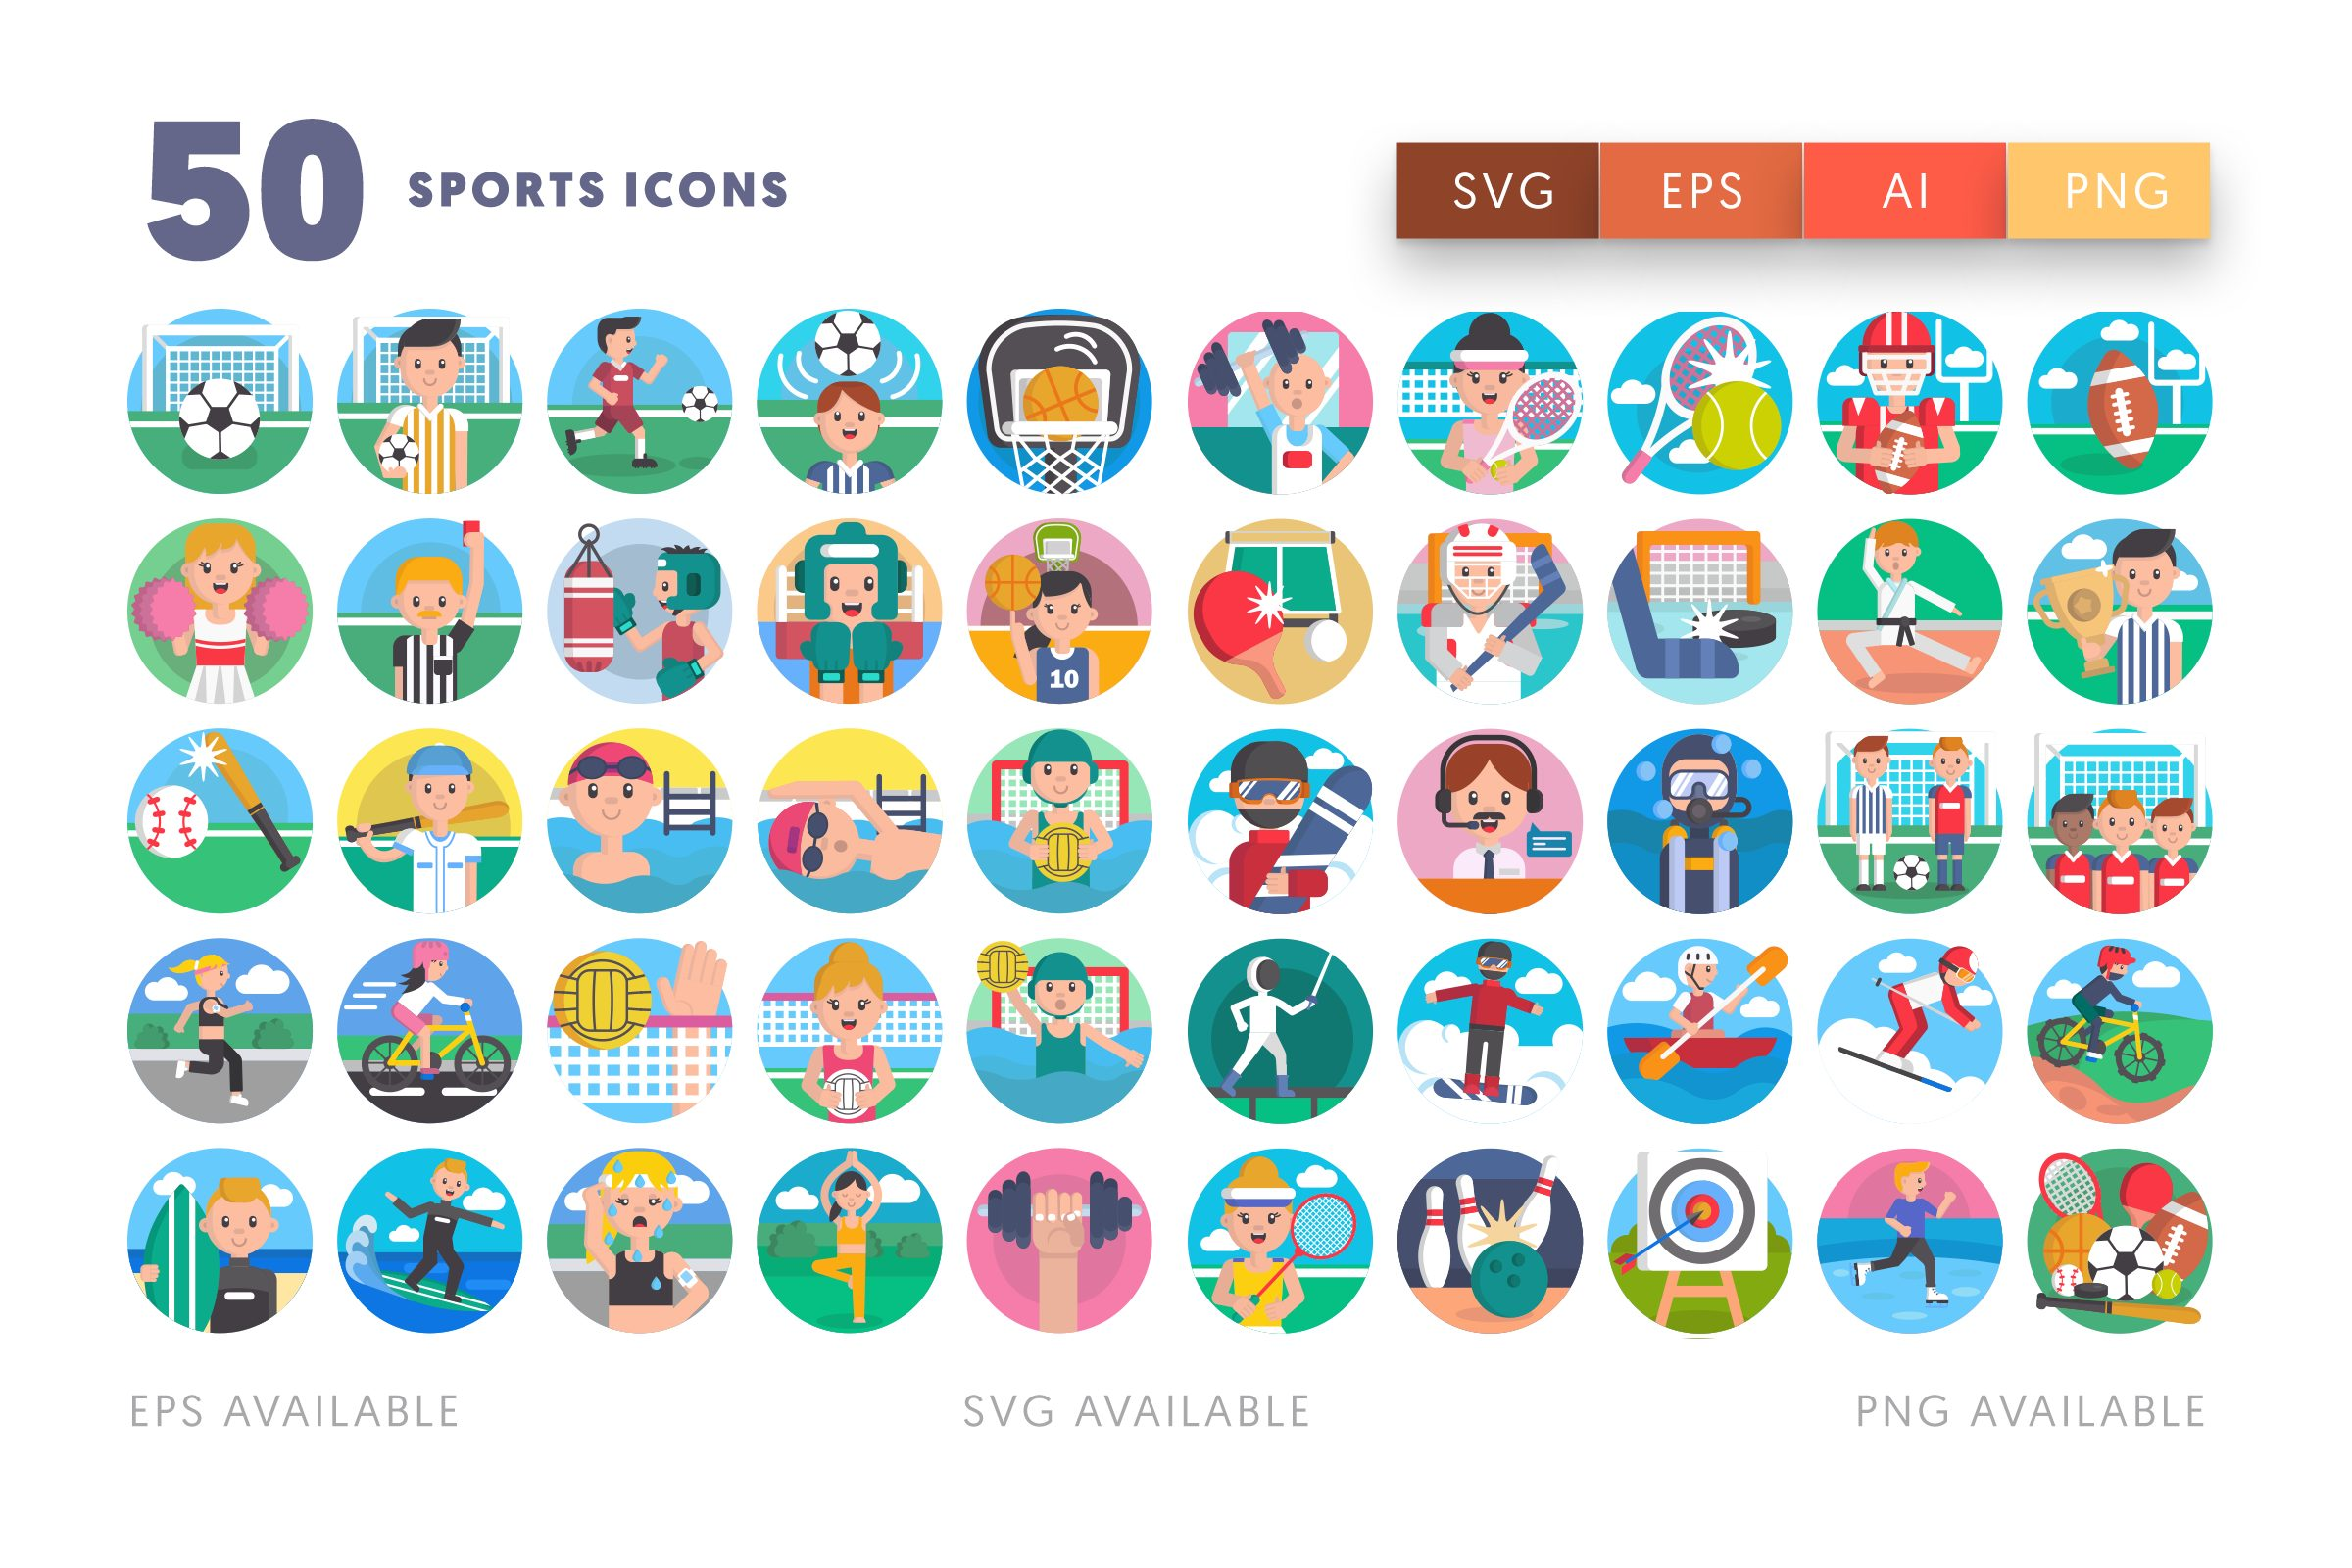 Sports icons png/svg/eps